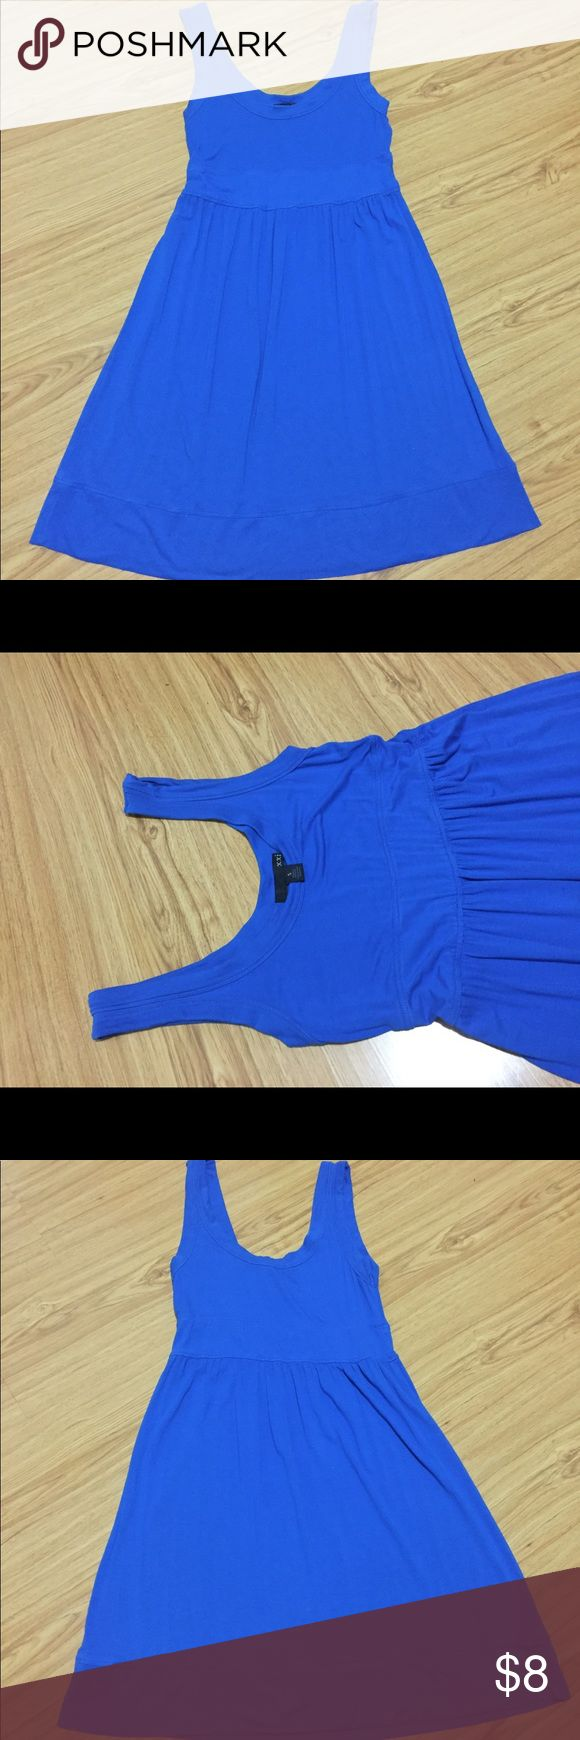 """BOGO- F21 Blue Dress Buy one get one FREE on all dresses !!! Buy 1 dress, get 2nd dress equal or lesser value for FREE! Please message me on what dresses you like so I can bundle for you. Bundle more to save on shipping cost...... Fast shipping!!  Forever 21 (XXI) Beautiful blue color knee length dress. Size: Small.... can dress up with a pair of heels or simply sandals/tennis for casual wear. Measure: from underarm down is 25"""". Forever 21 Dresses Mini"""